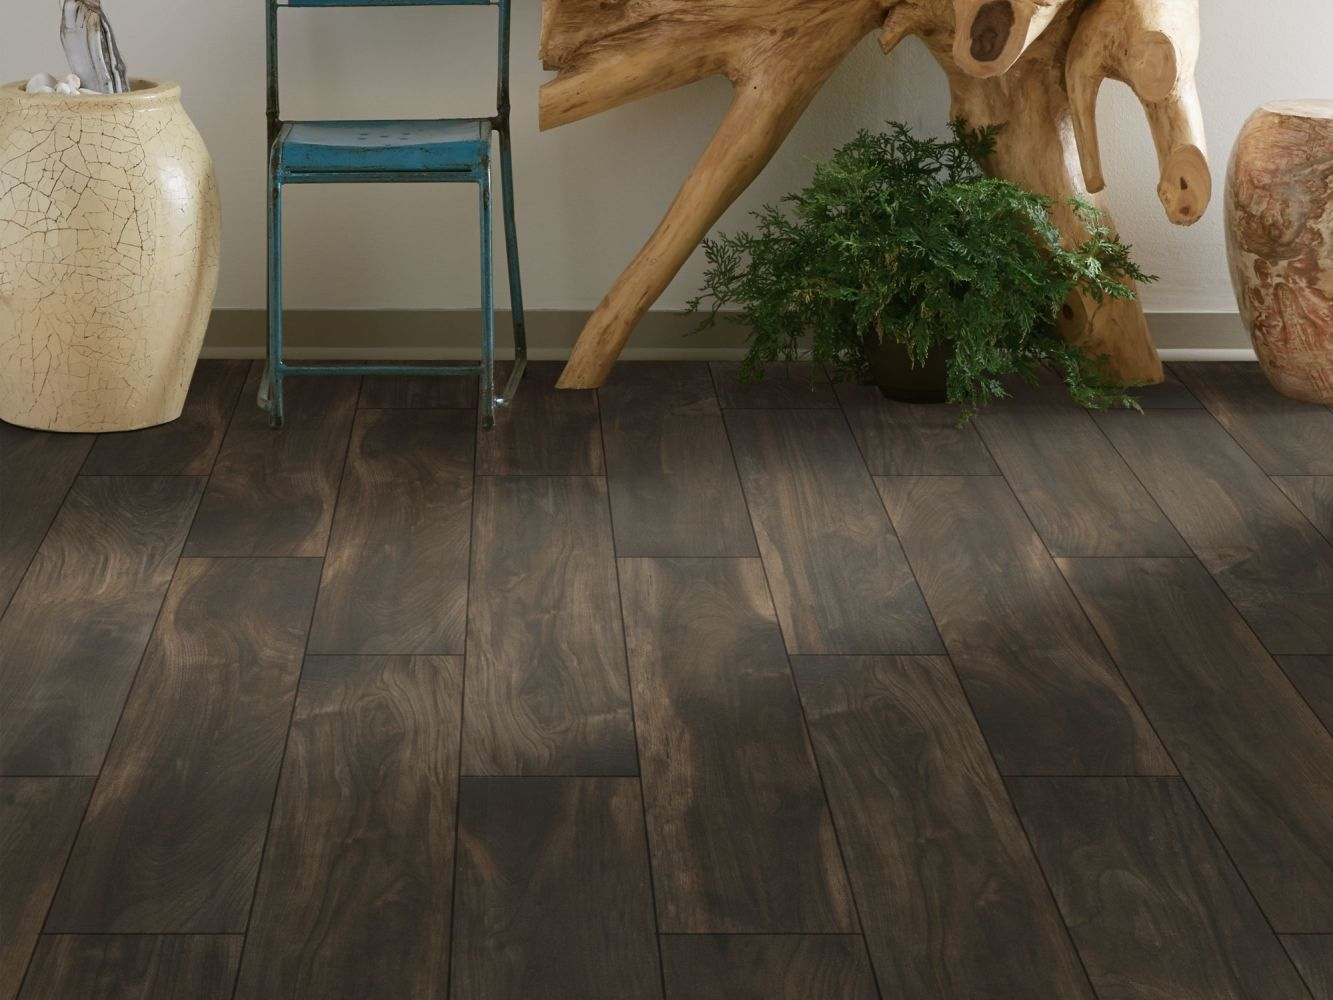 Shaw Floors Ceramic Solutions Heirloom 8 X 36 Silhouette 00770_CS39Z